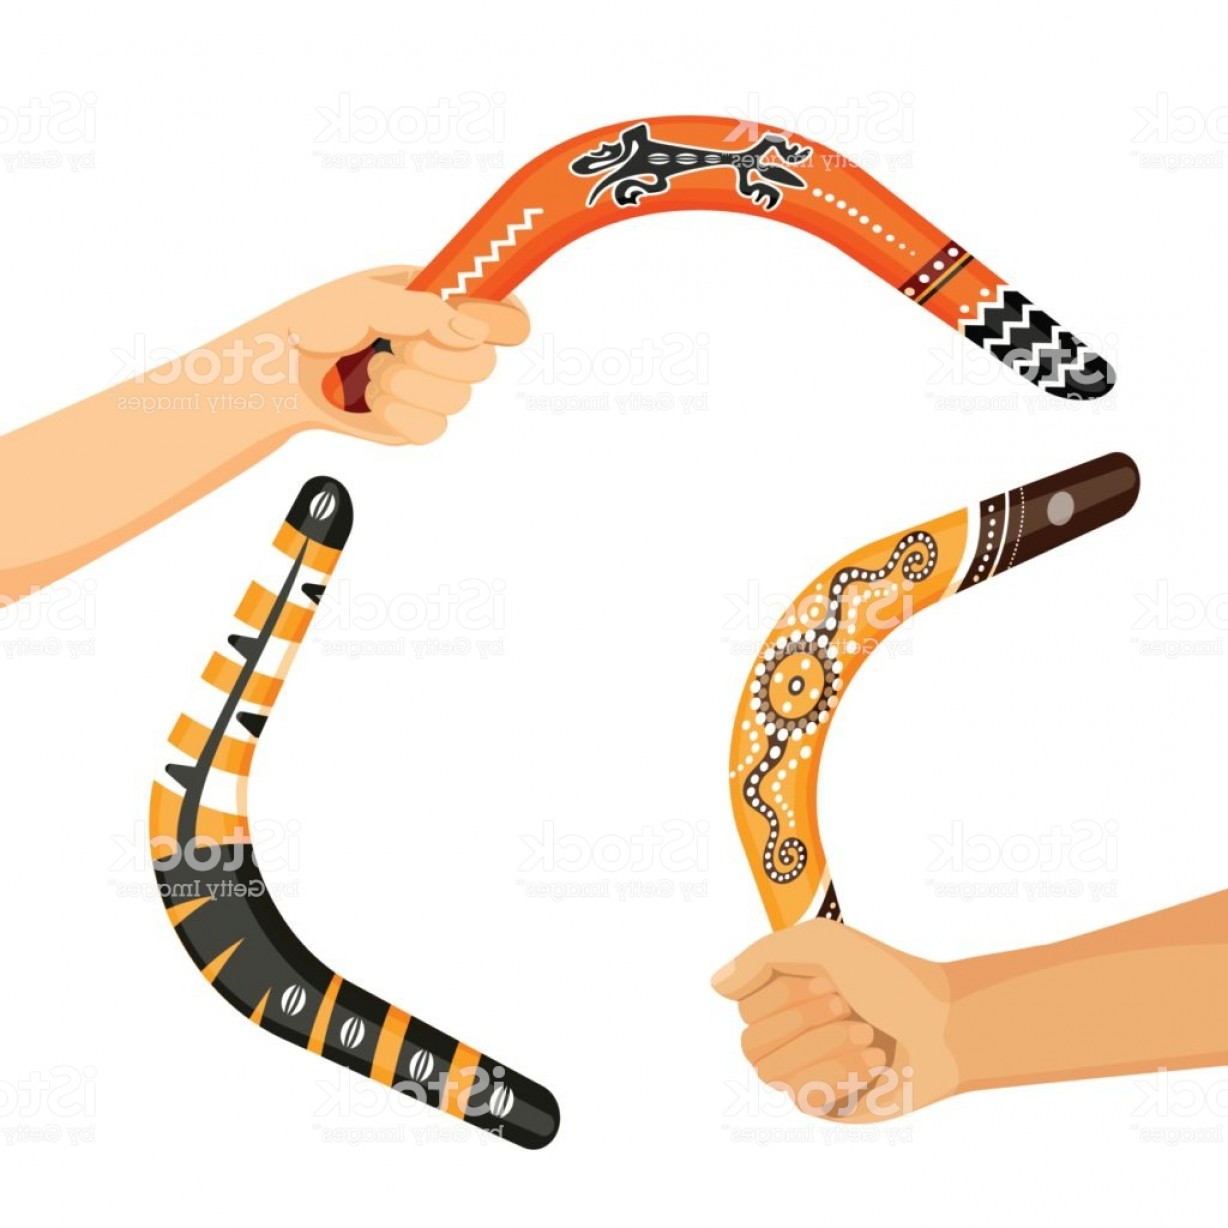 Boomerang Vector Curve: Painted Traditional Australian Boomerang Tools In Hands Vector Gm